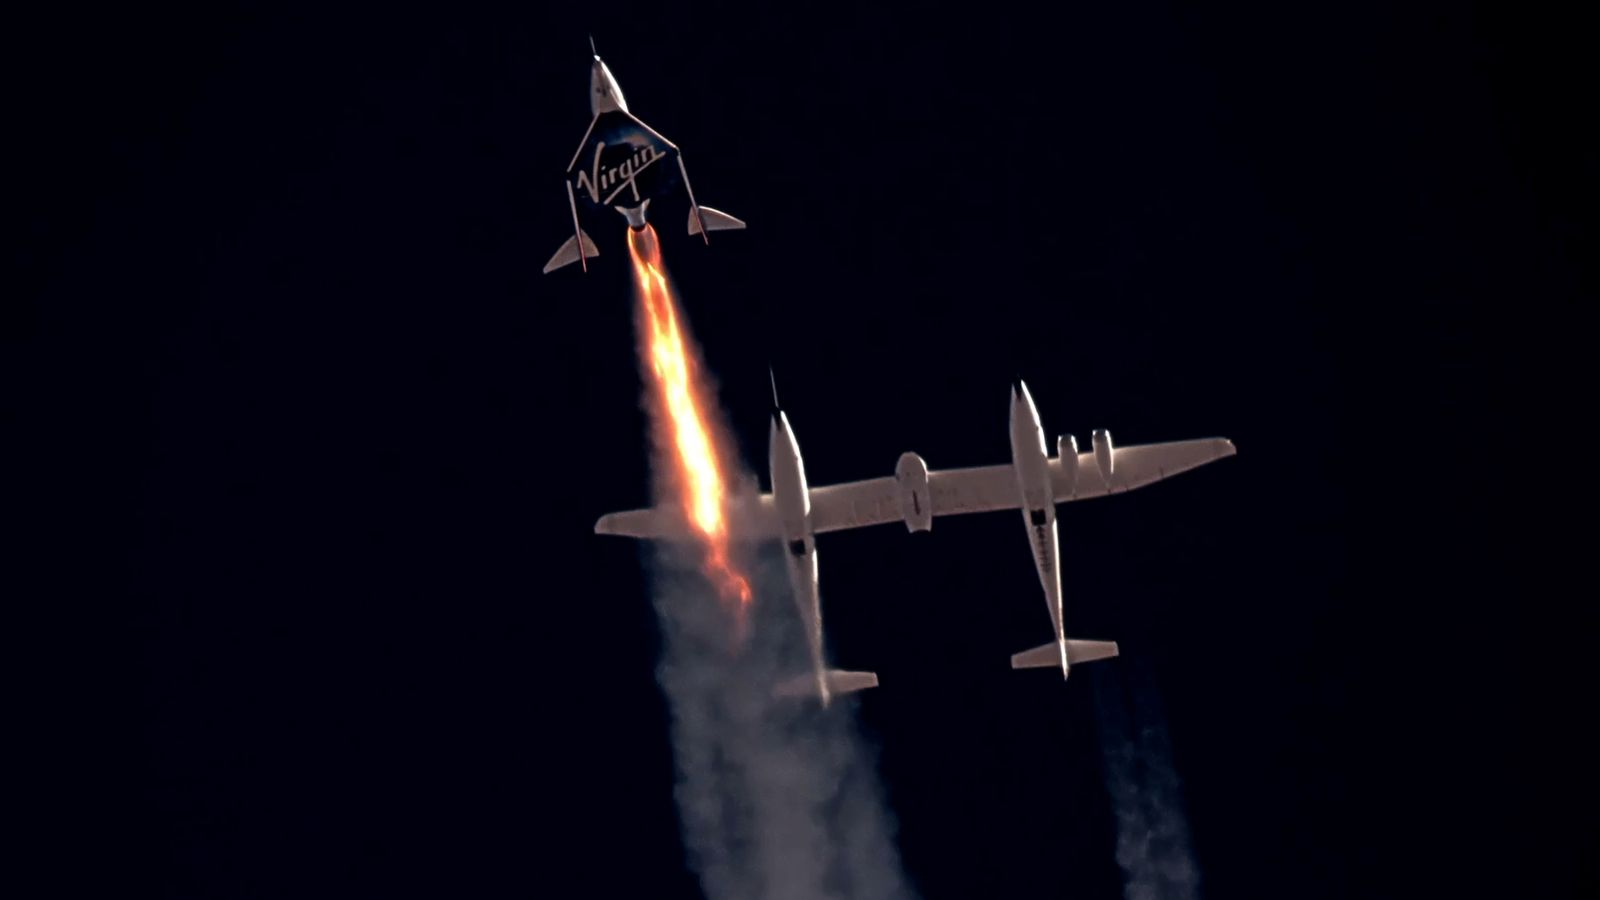 Sir Richard Branson's space tourism flight is a landmark moment – but out of reach for most people